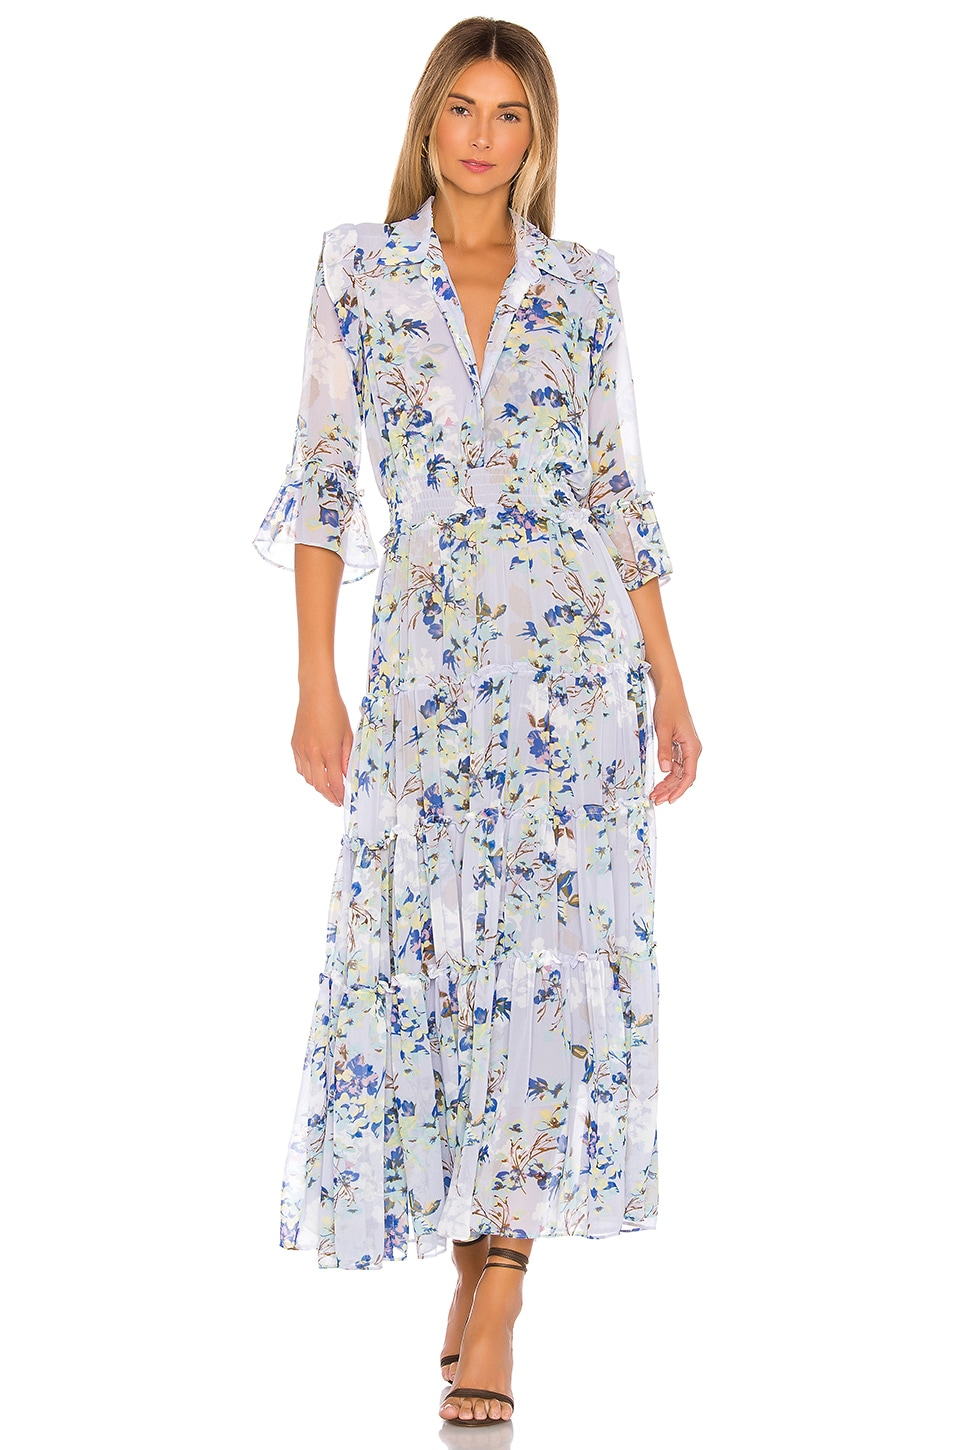 MISA Los Angeles Pamelina Dress in Periwinkle Floral